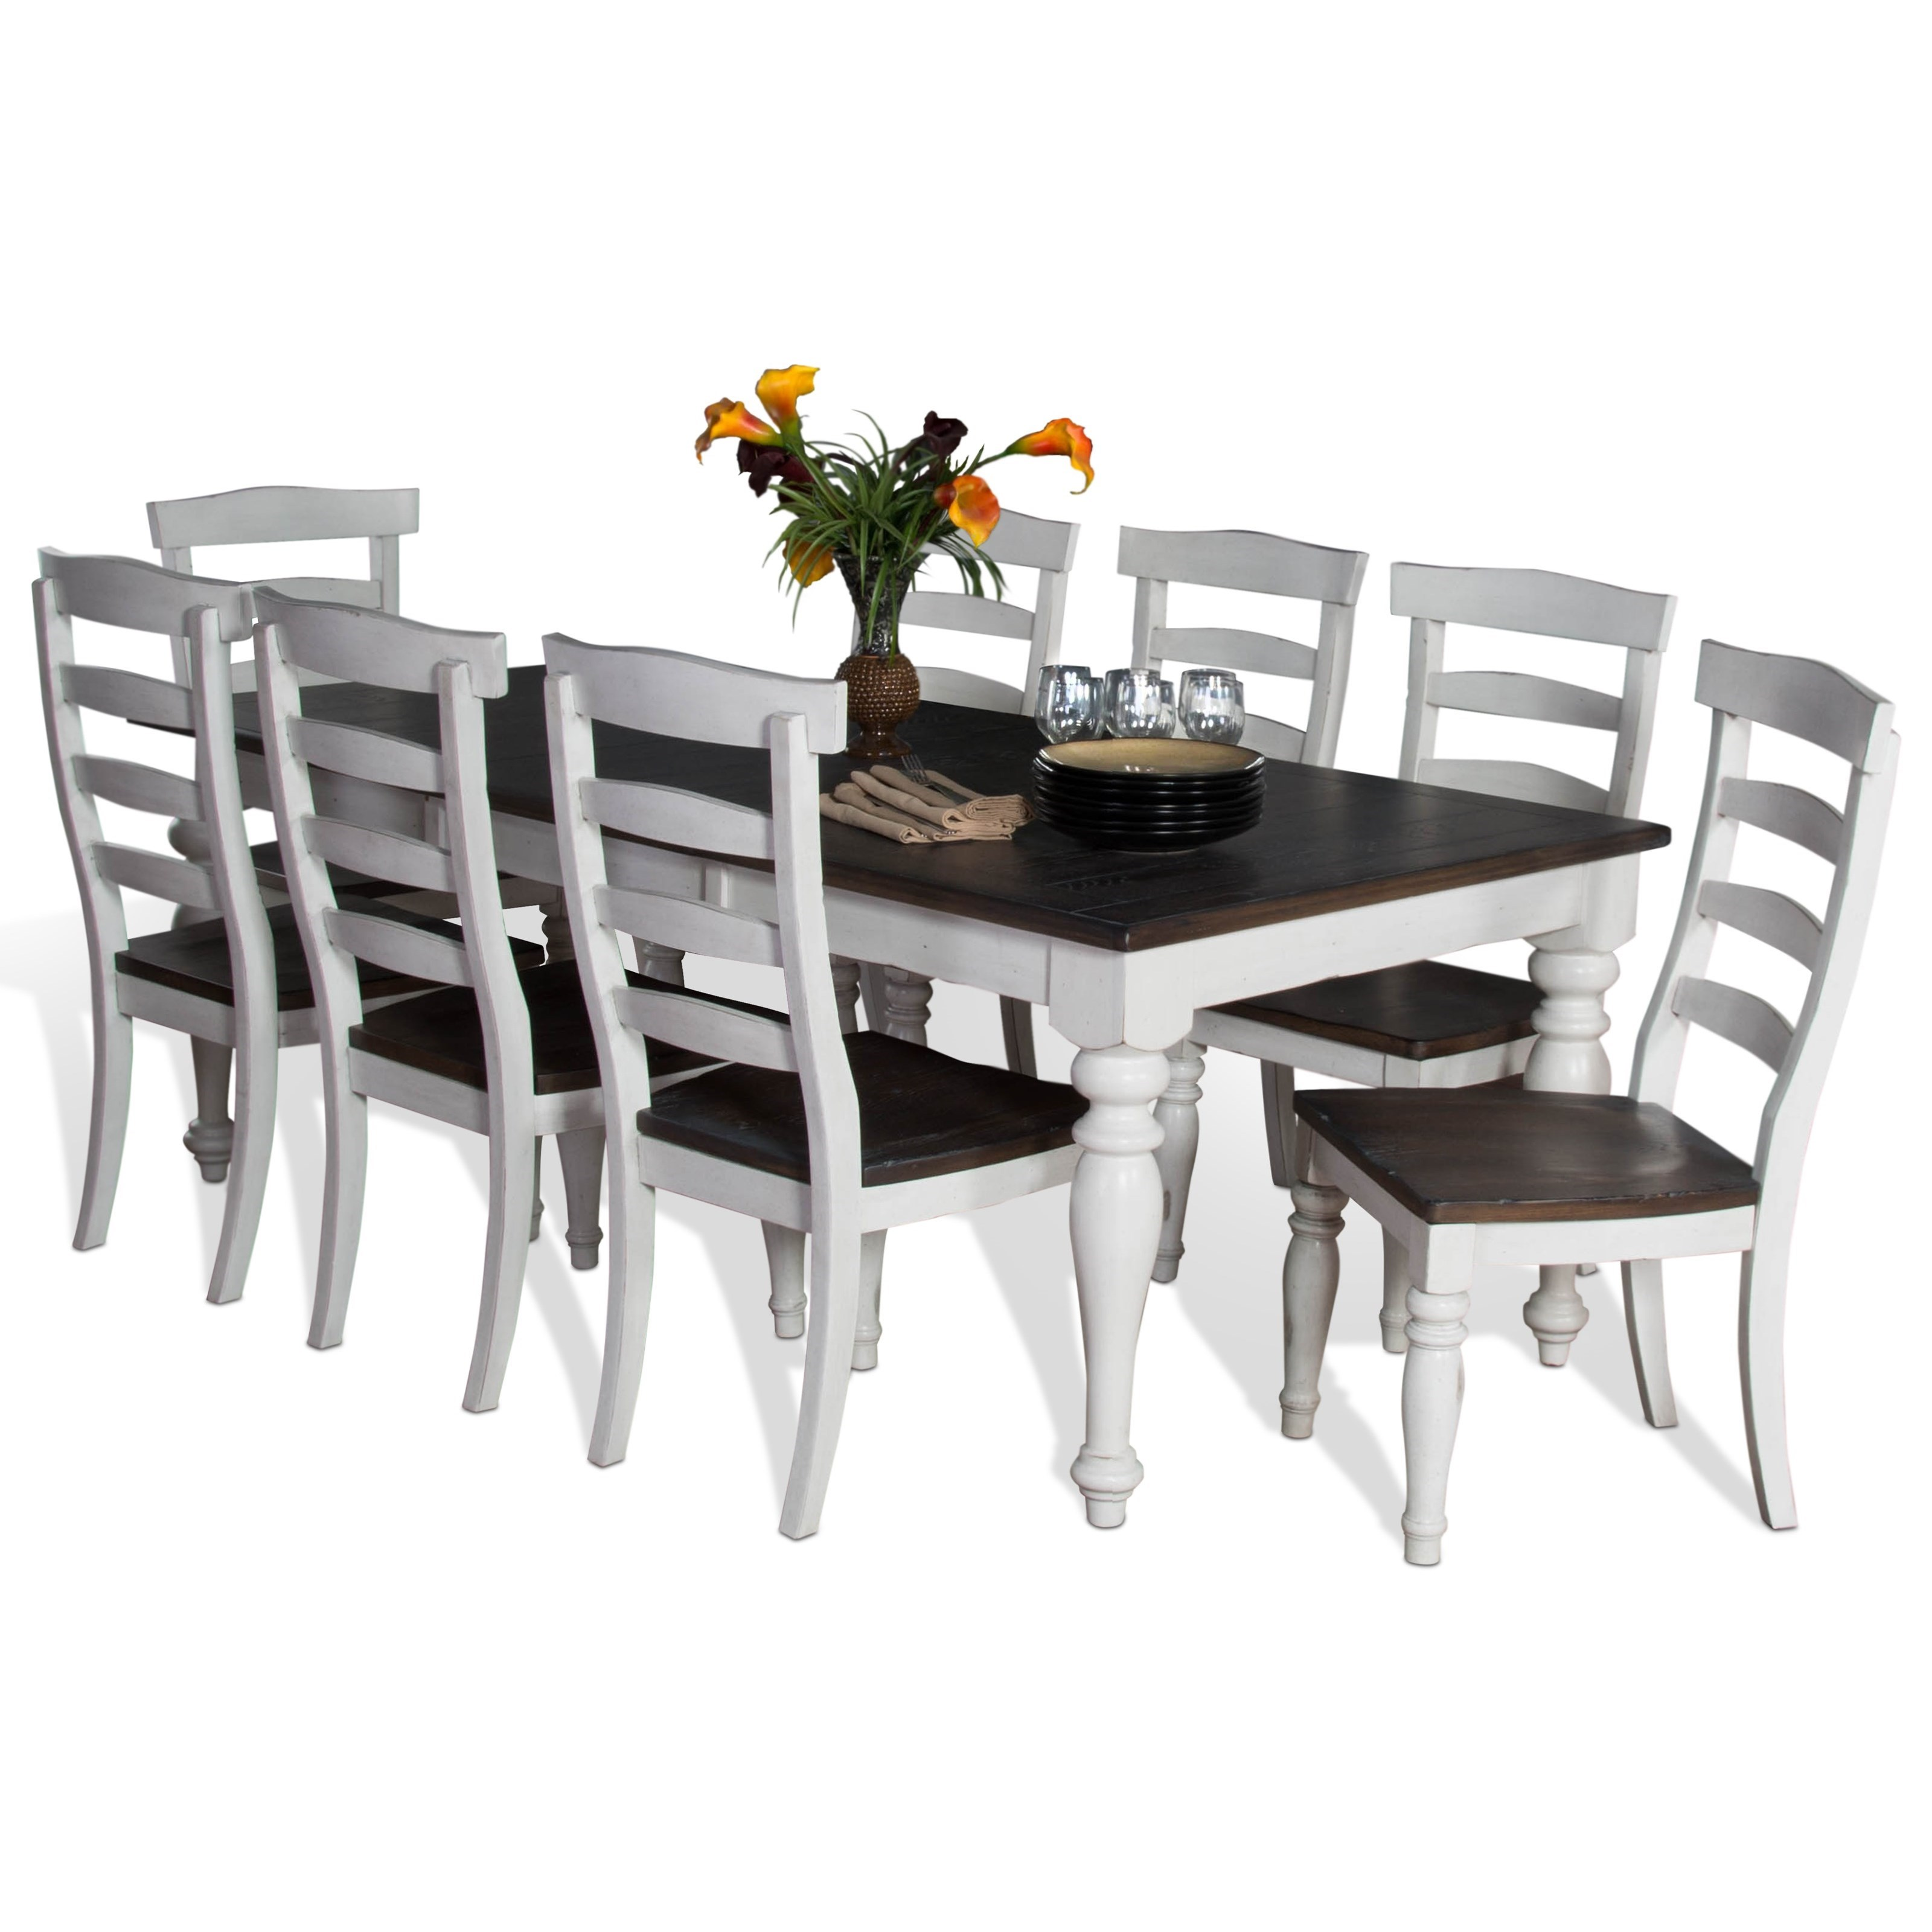 9piece extension dining table set with ladderback chairs